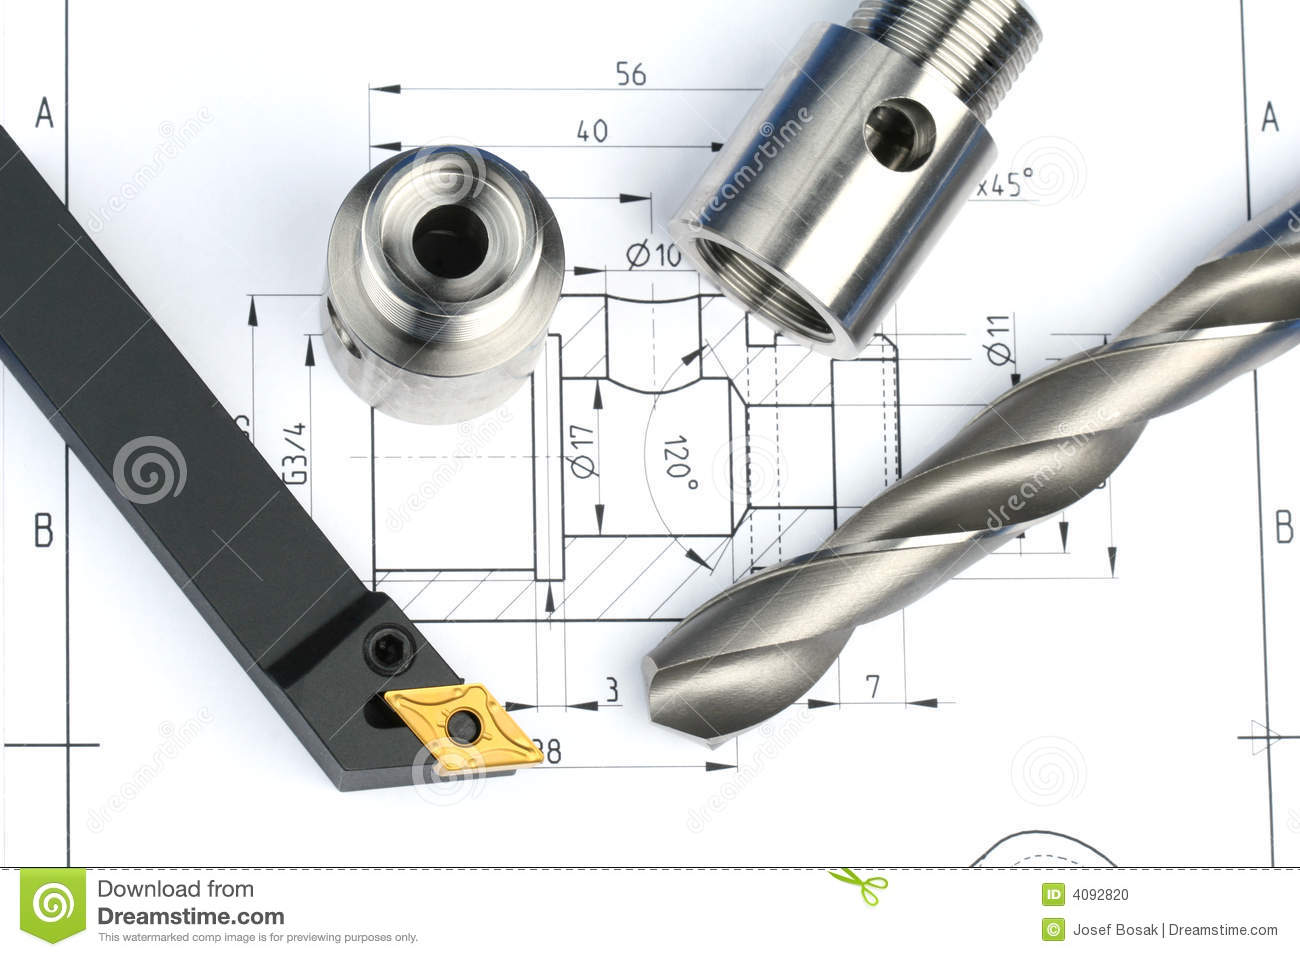 Lathe tool, drill and workpiece